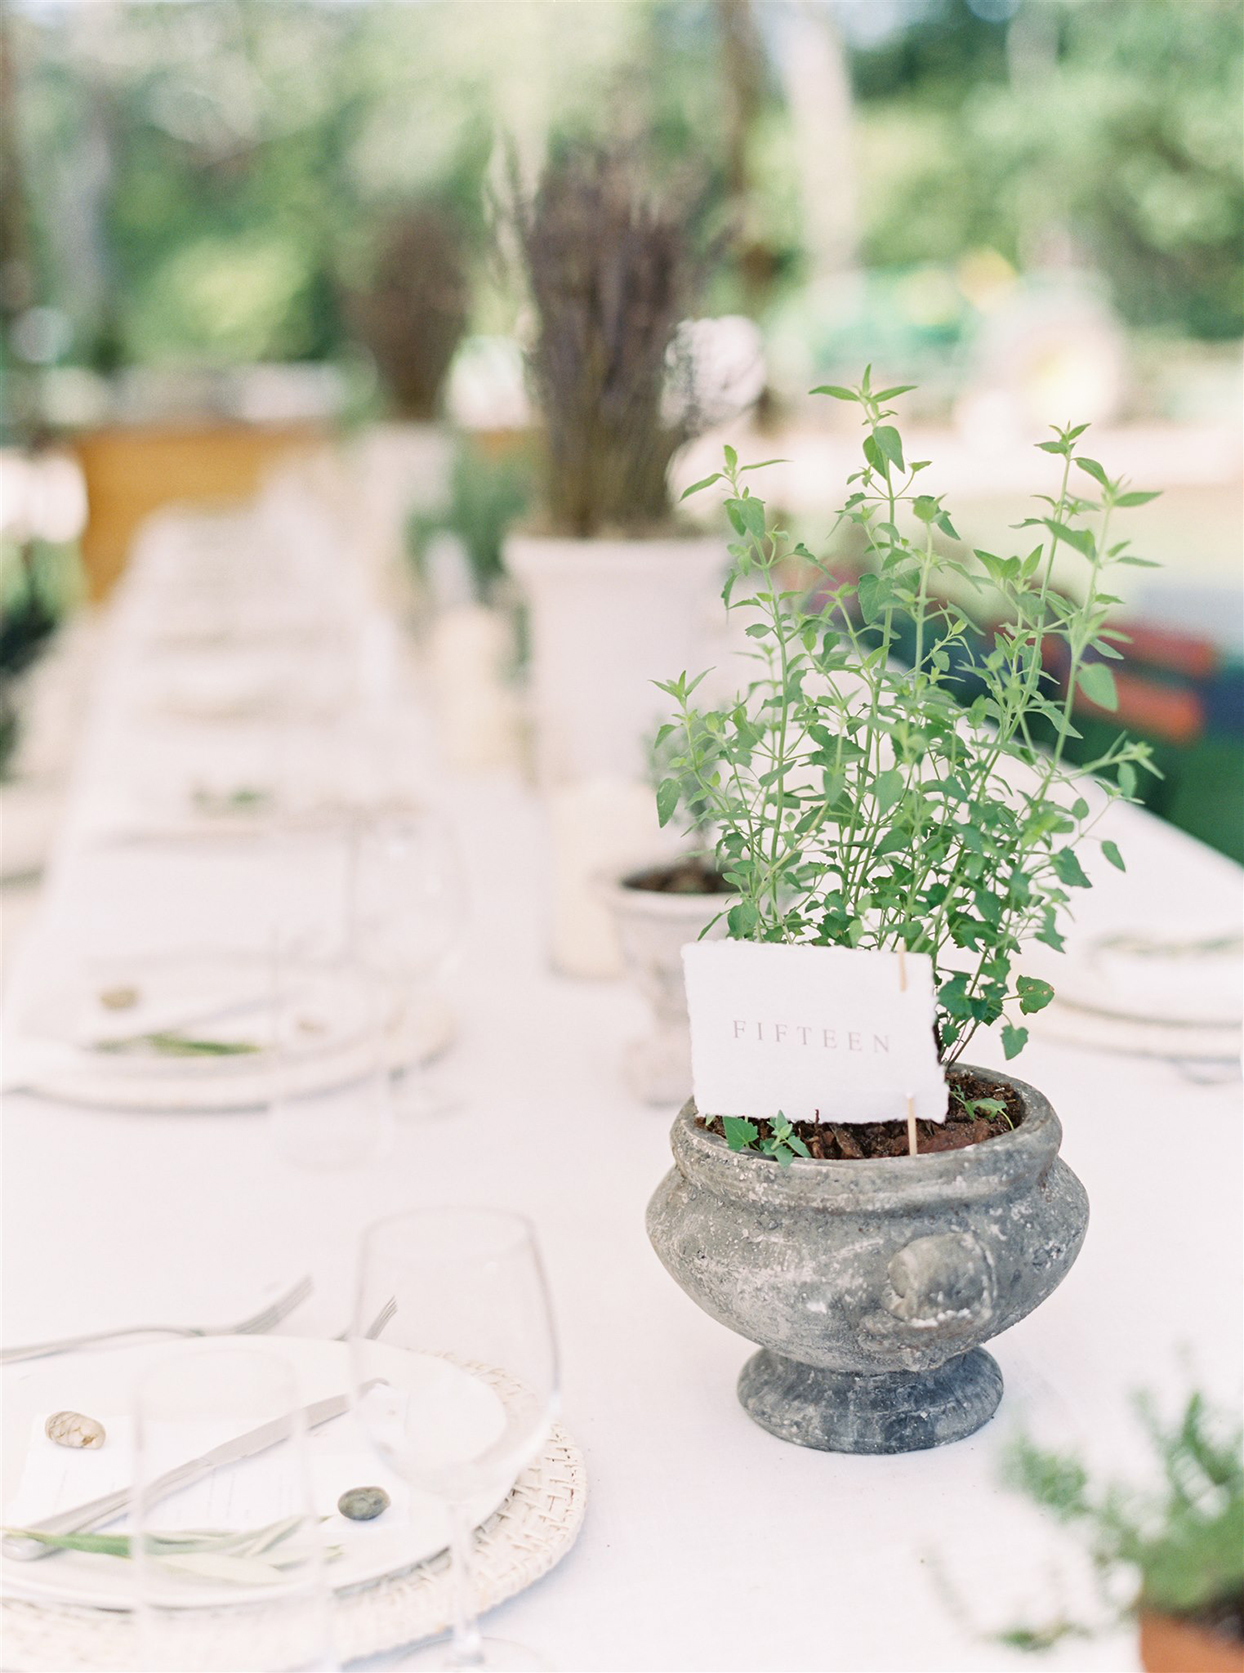 stone pot with plant and table number card at wedding reception